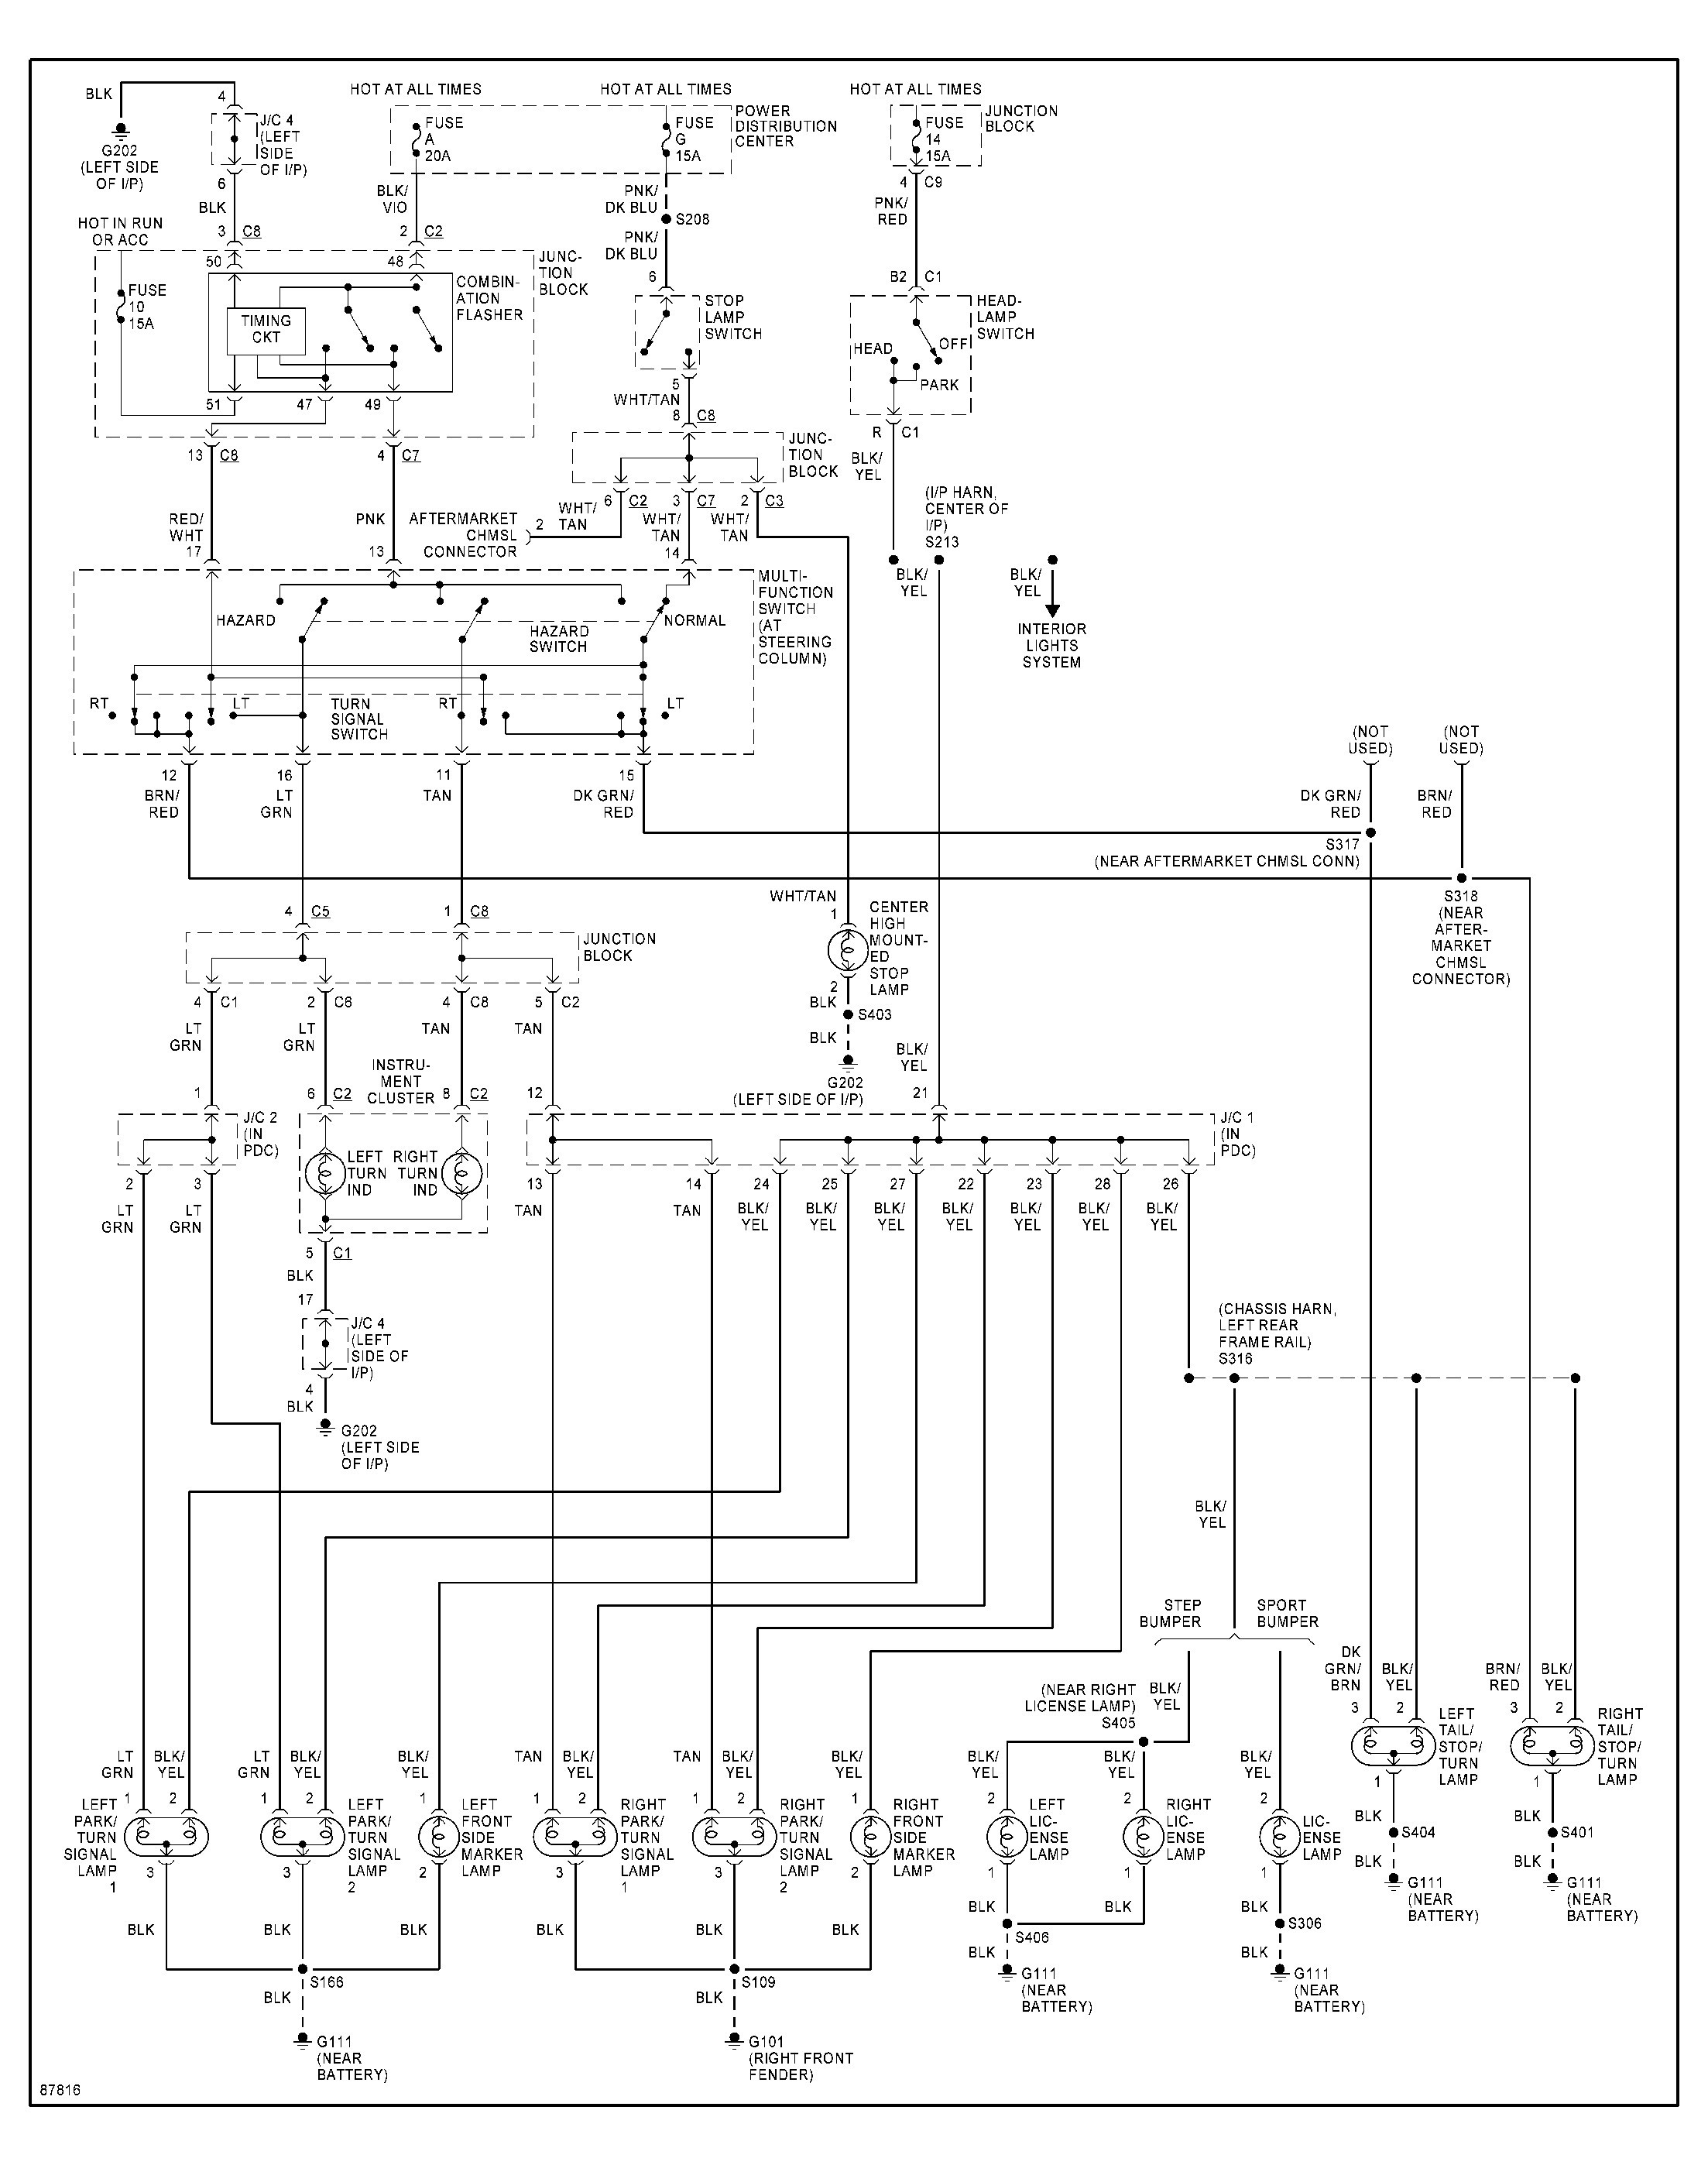 1995 Dodge Ram 2500 Headlight Switch Wiring Diagram